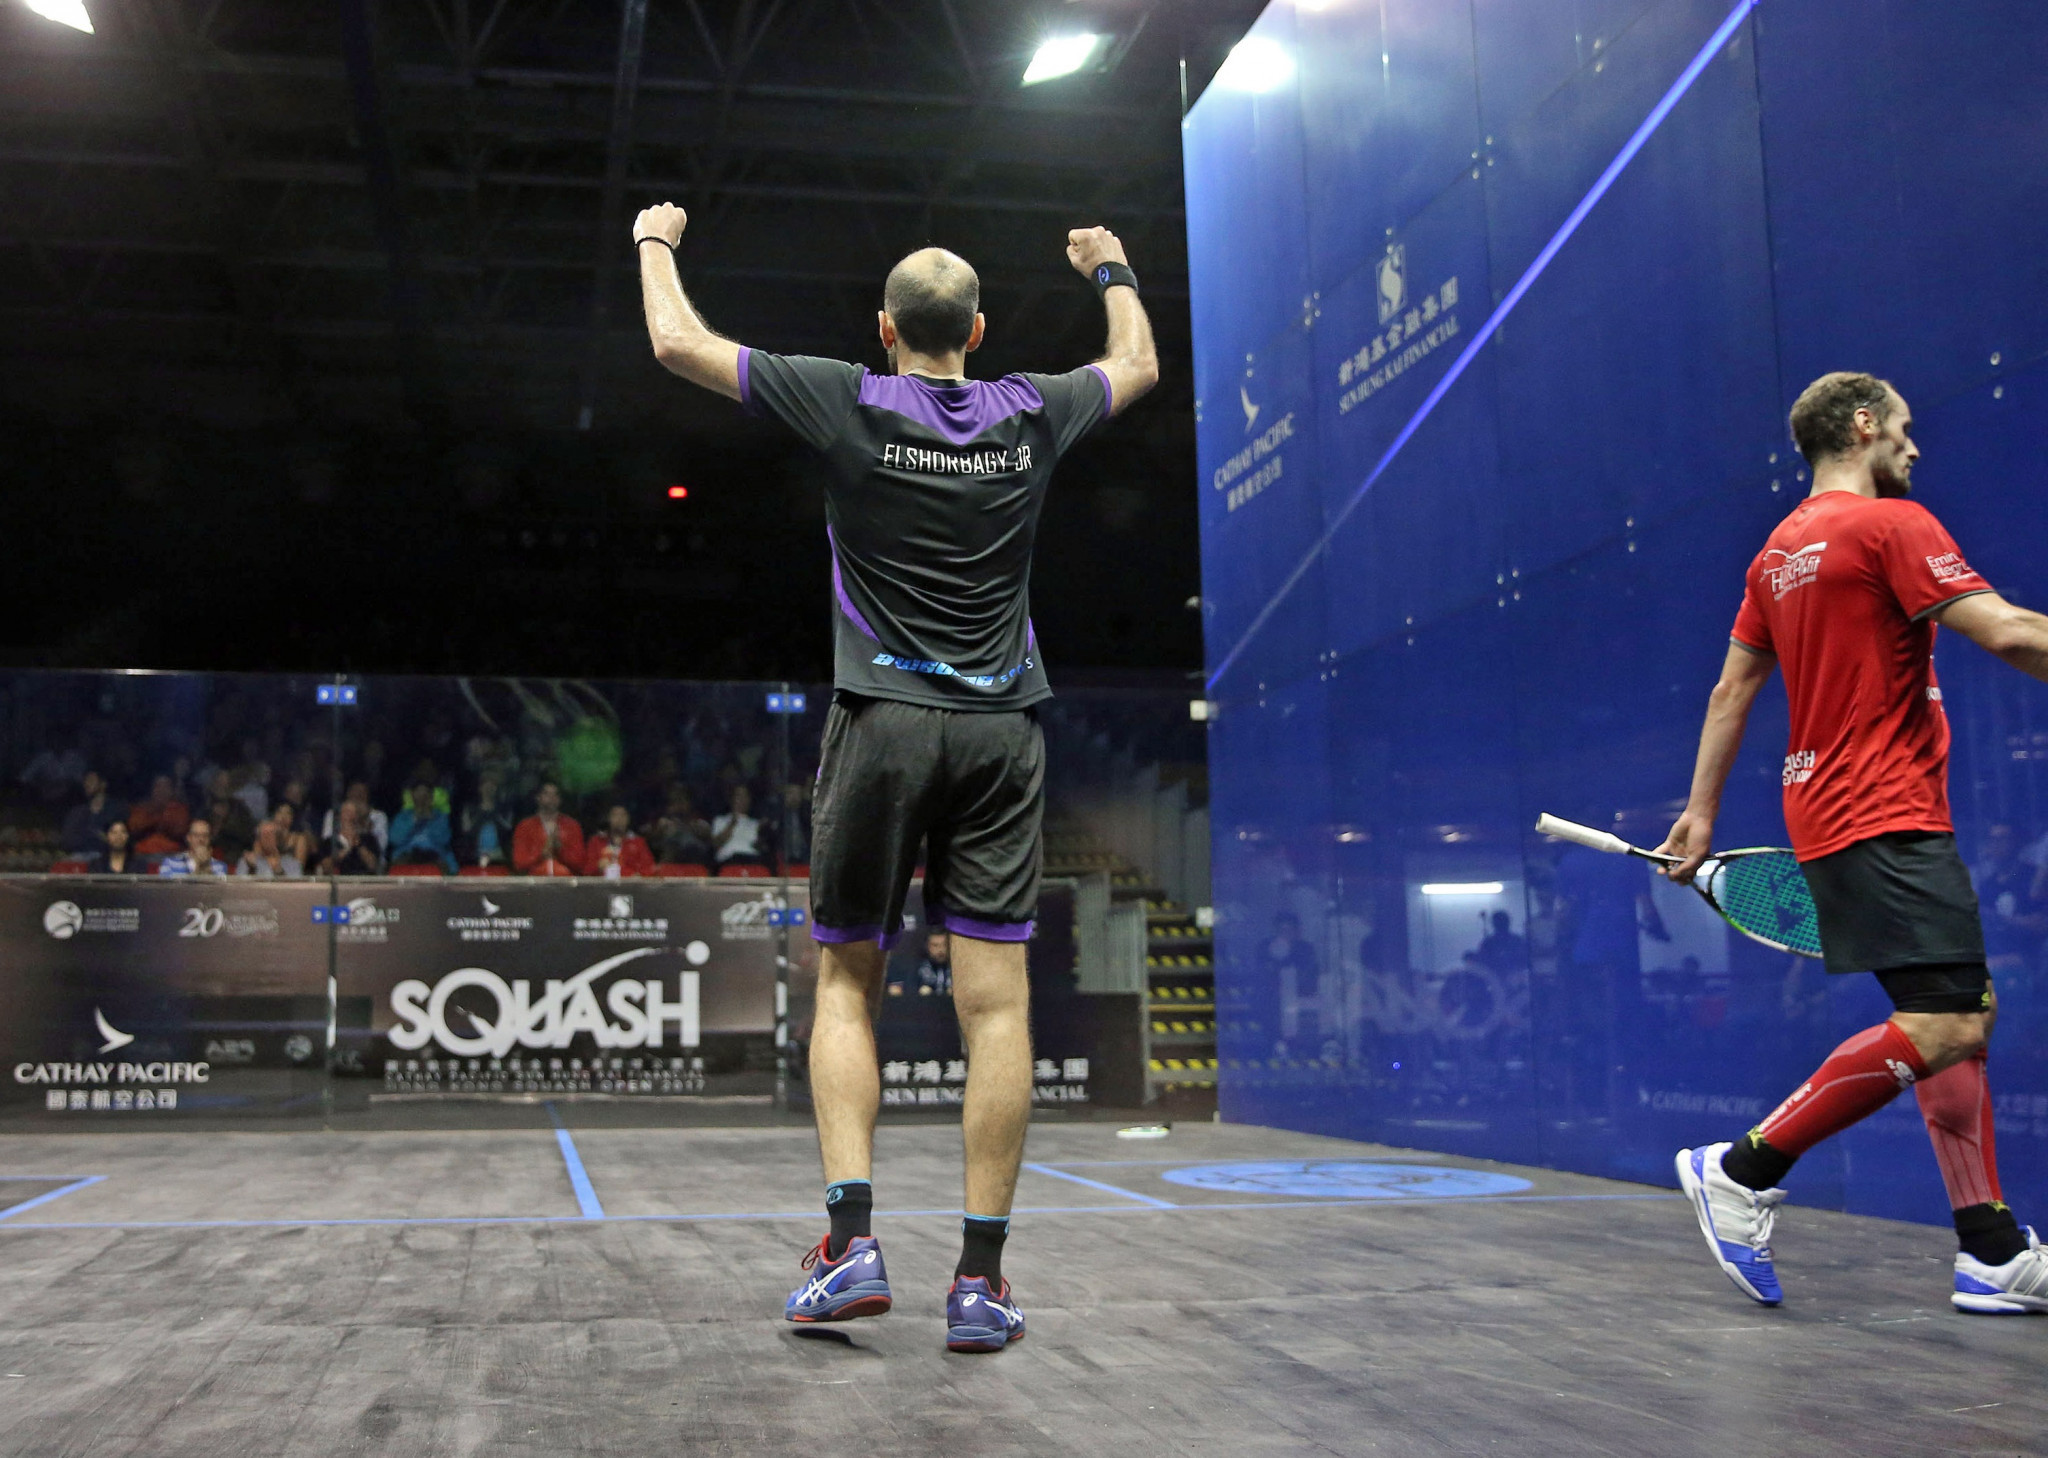 Marwan Elshorbagy is among the four Egyptians to have qualified for the men's semi-finals at the PSA Hong Kong Open ©PSA